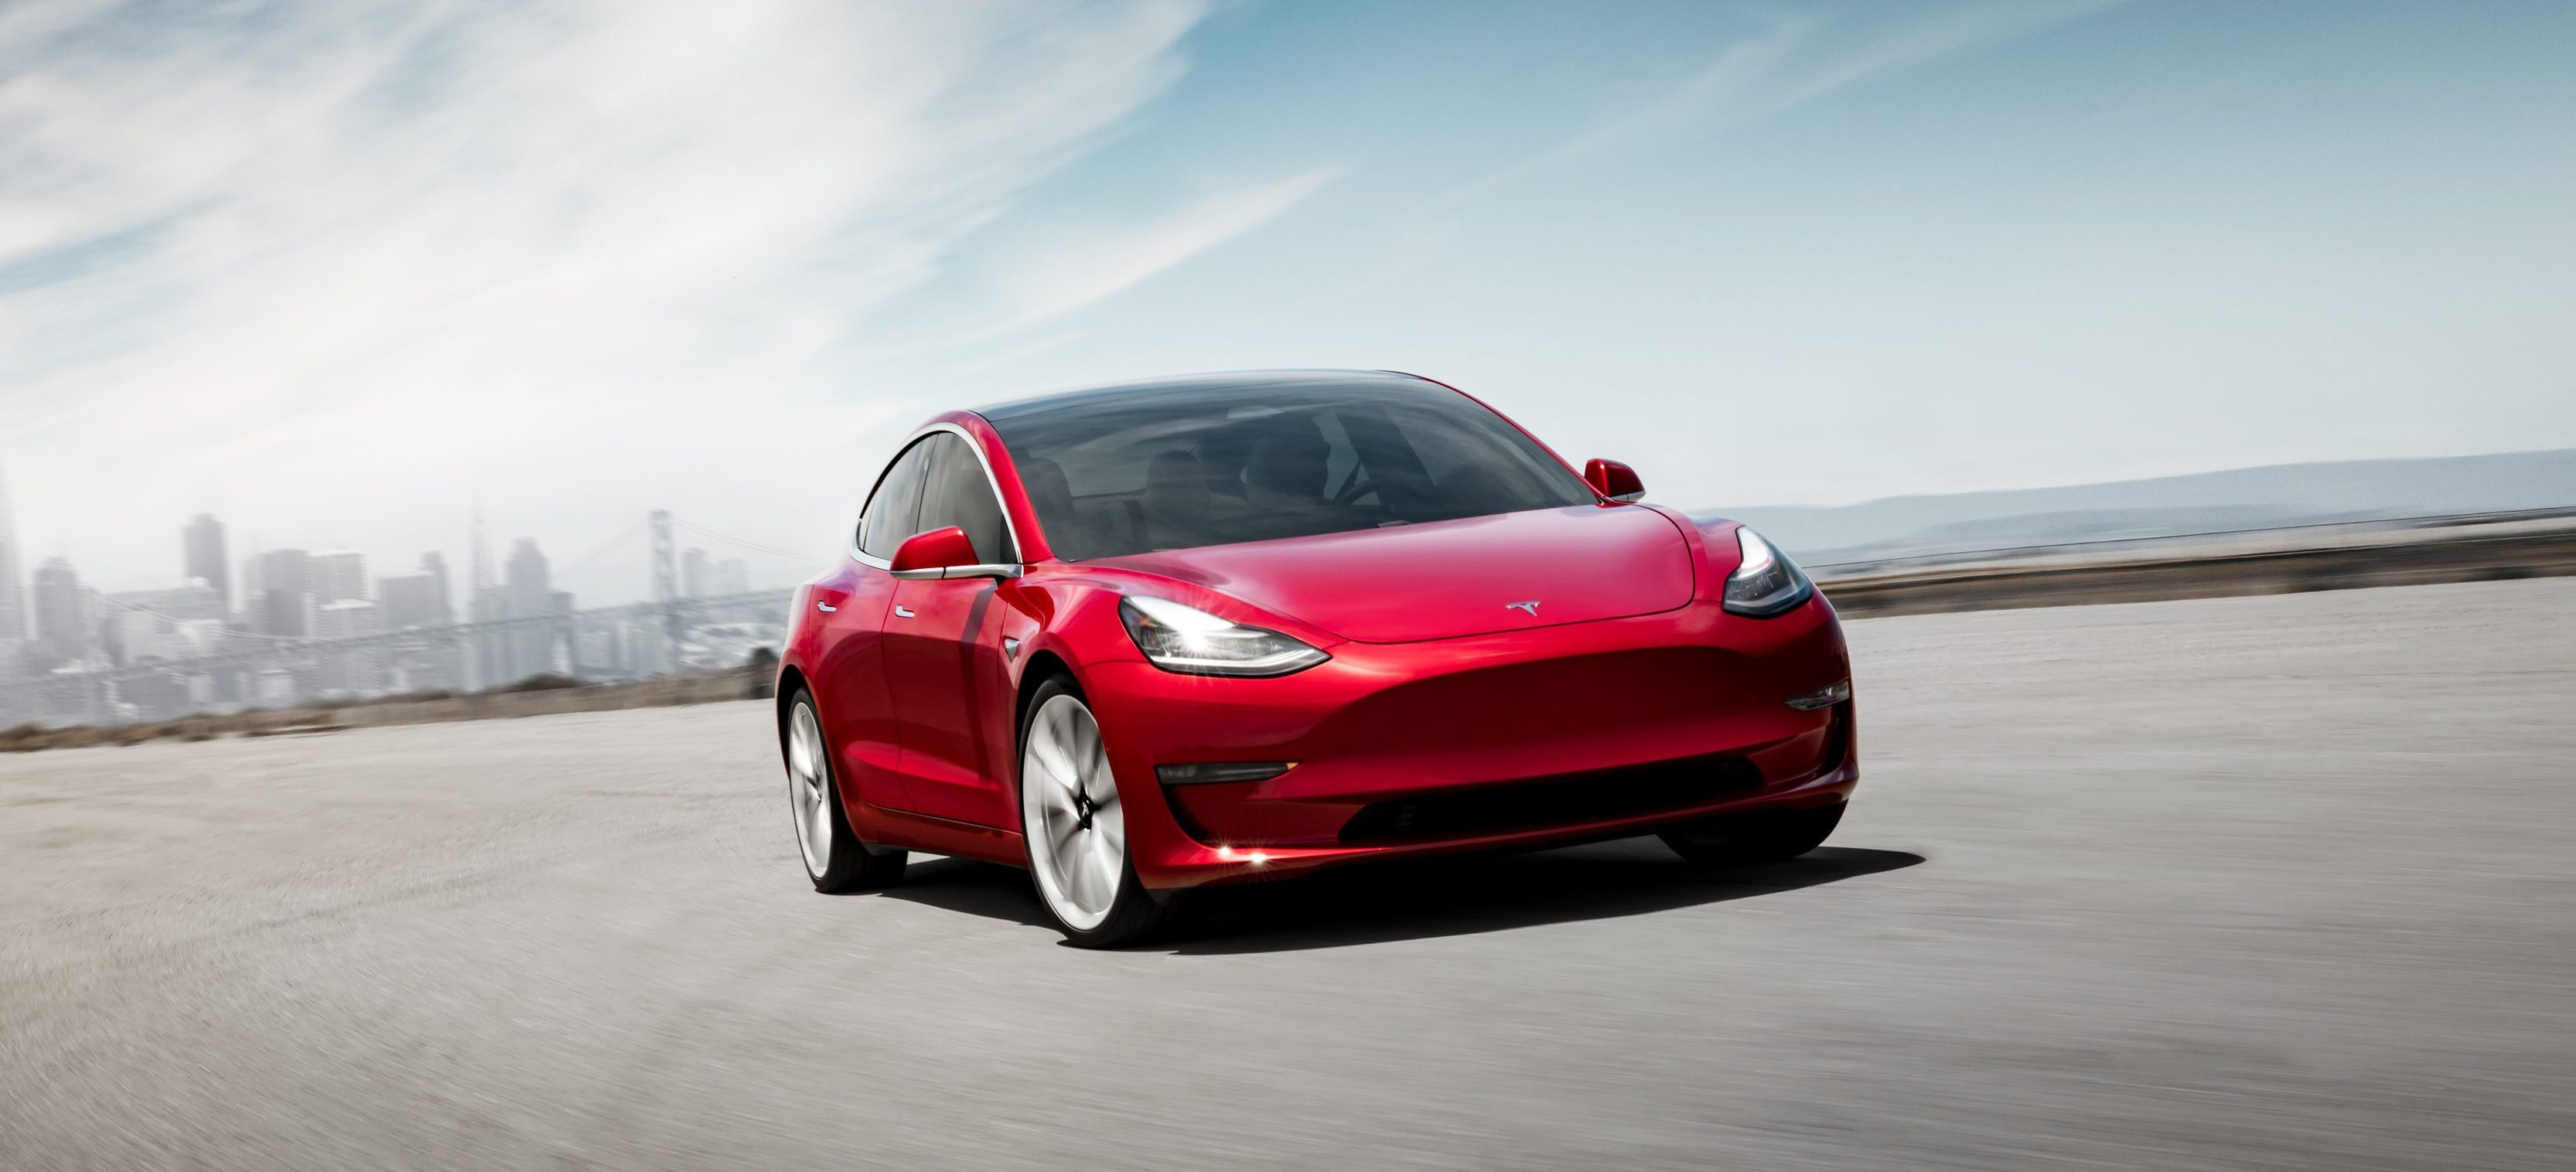 Tesla removes any mention of standard Model 3 battery from website – fans panic